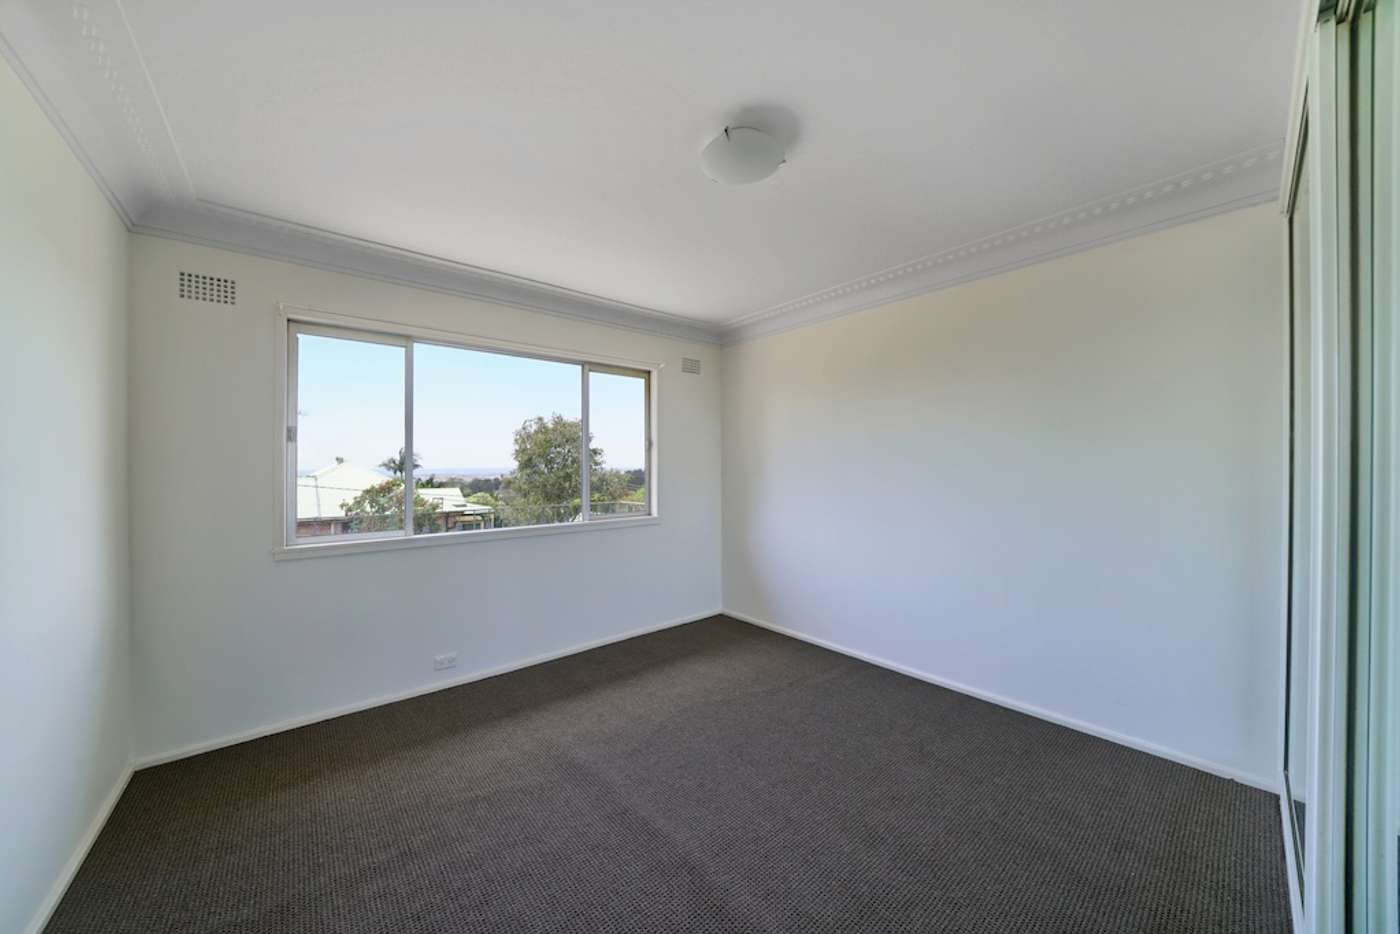 Seventh view of Homely house listing, 51-53 Moorland Road, Tahmoor NSW 2573